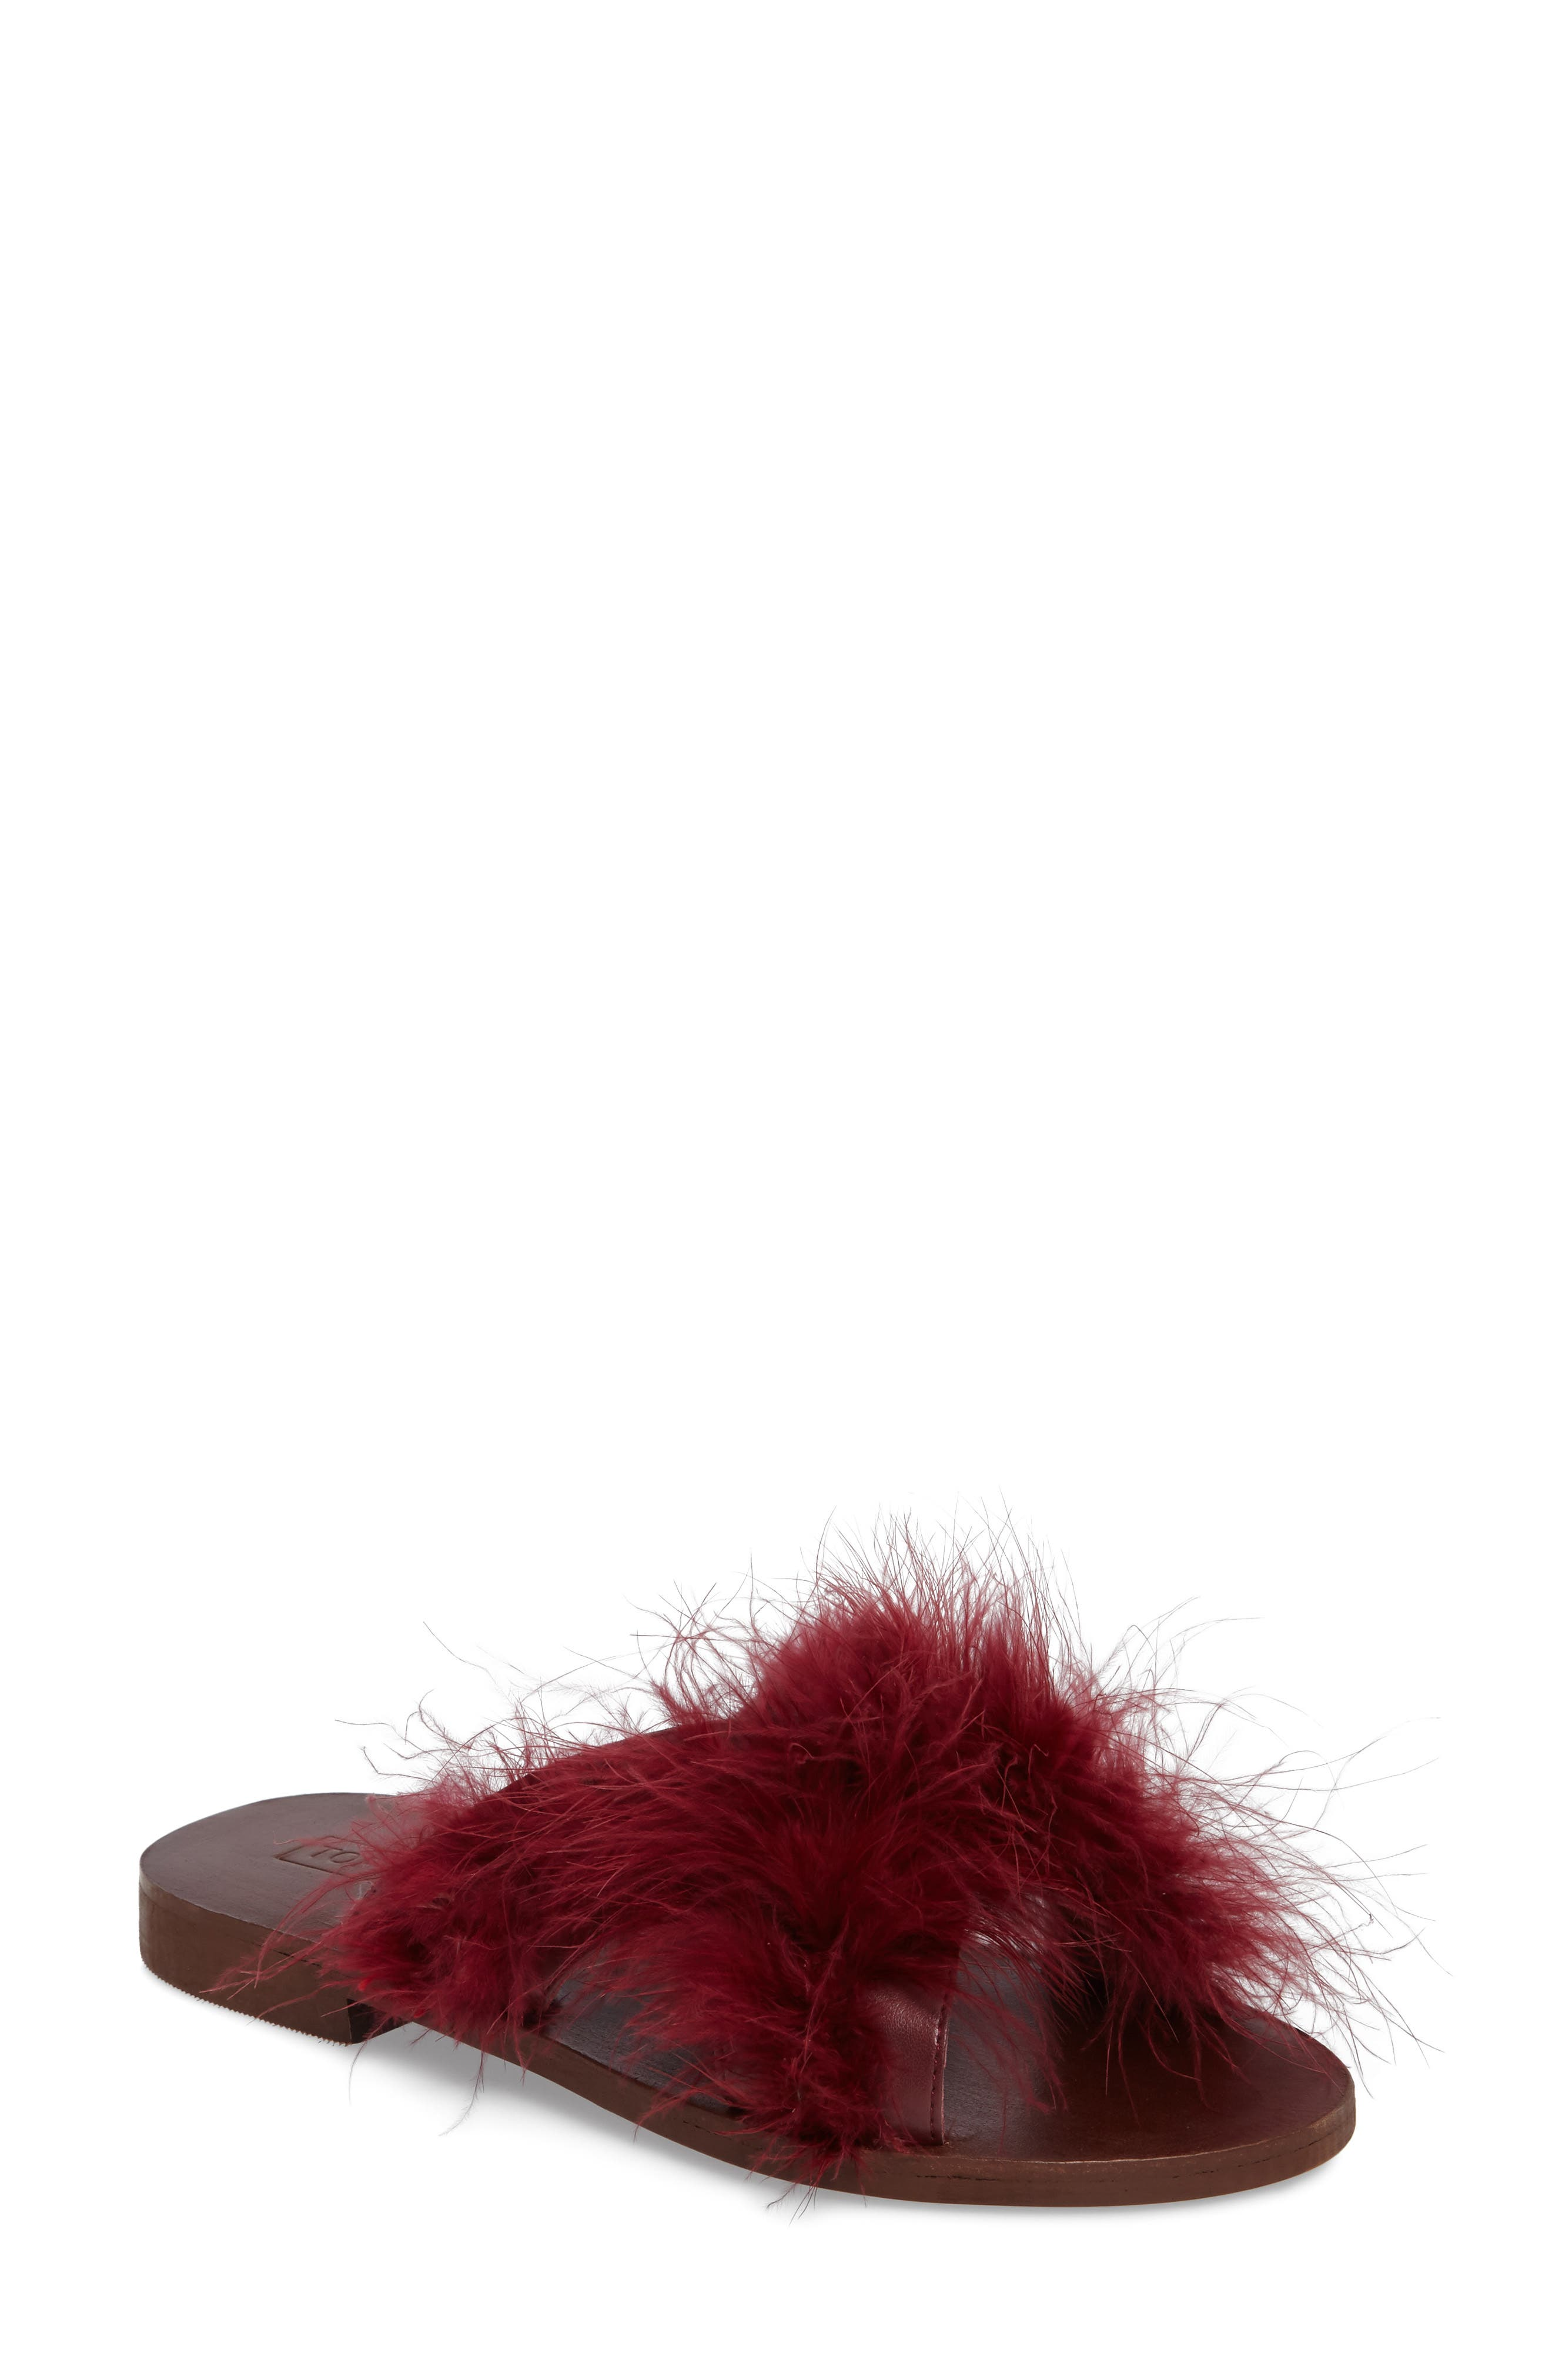 Main Image - Topshop Fenella Feathered Sandal (Women)